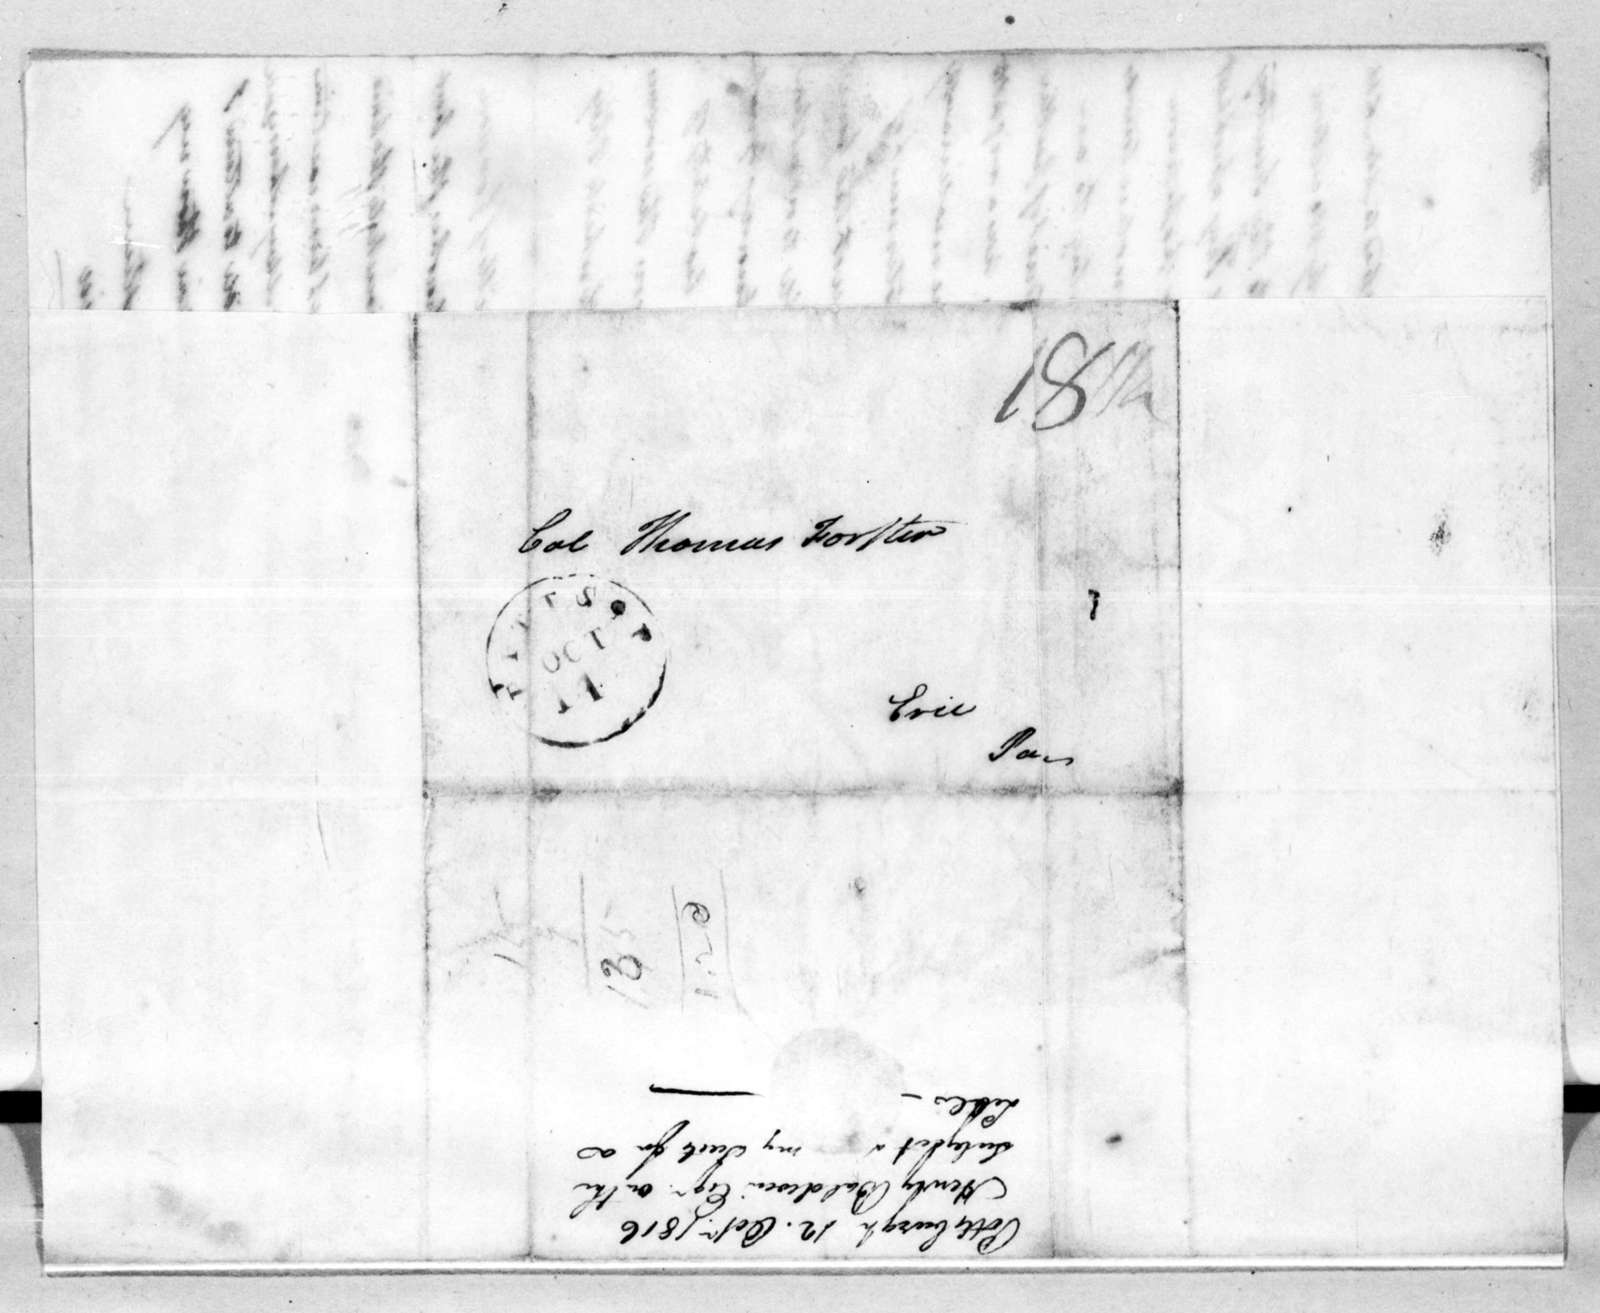 Henry Baldwin to Thomas Forster, October 12, 1816